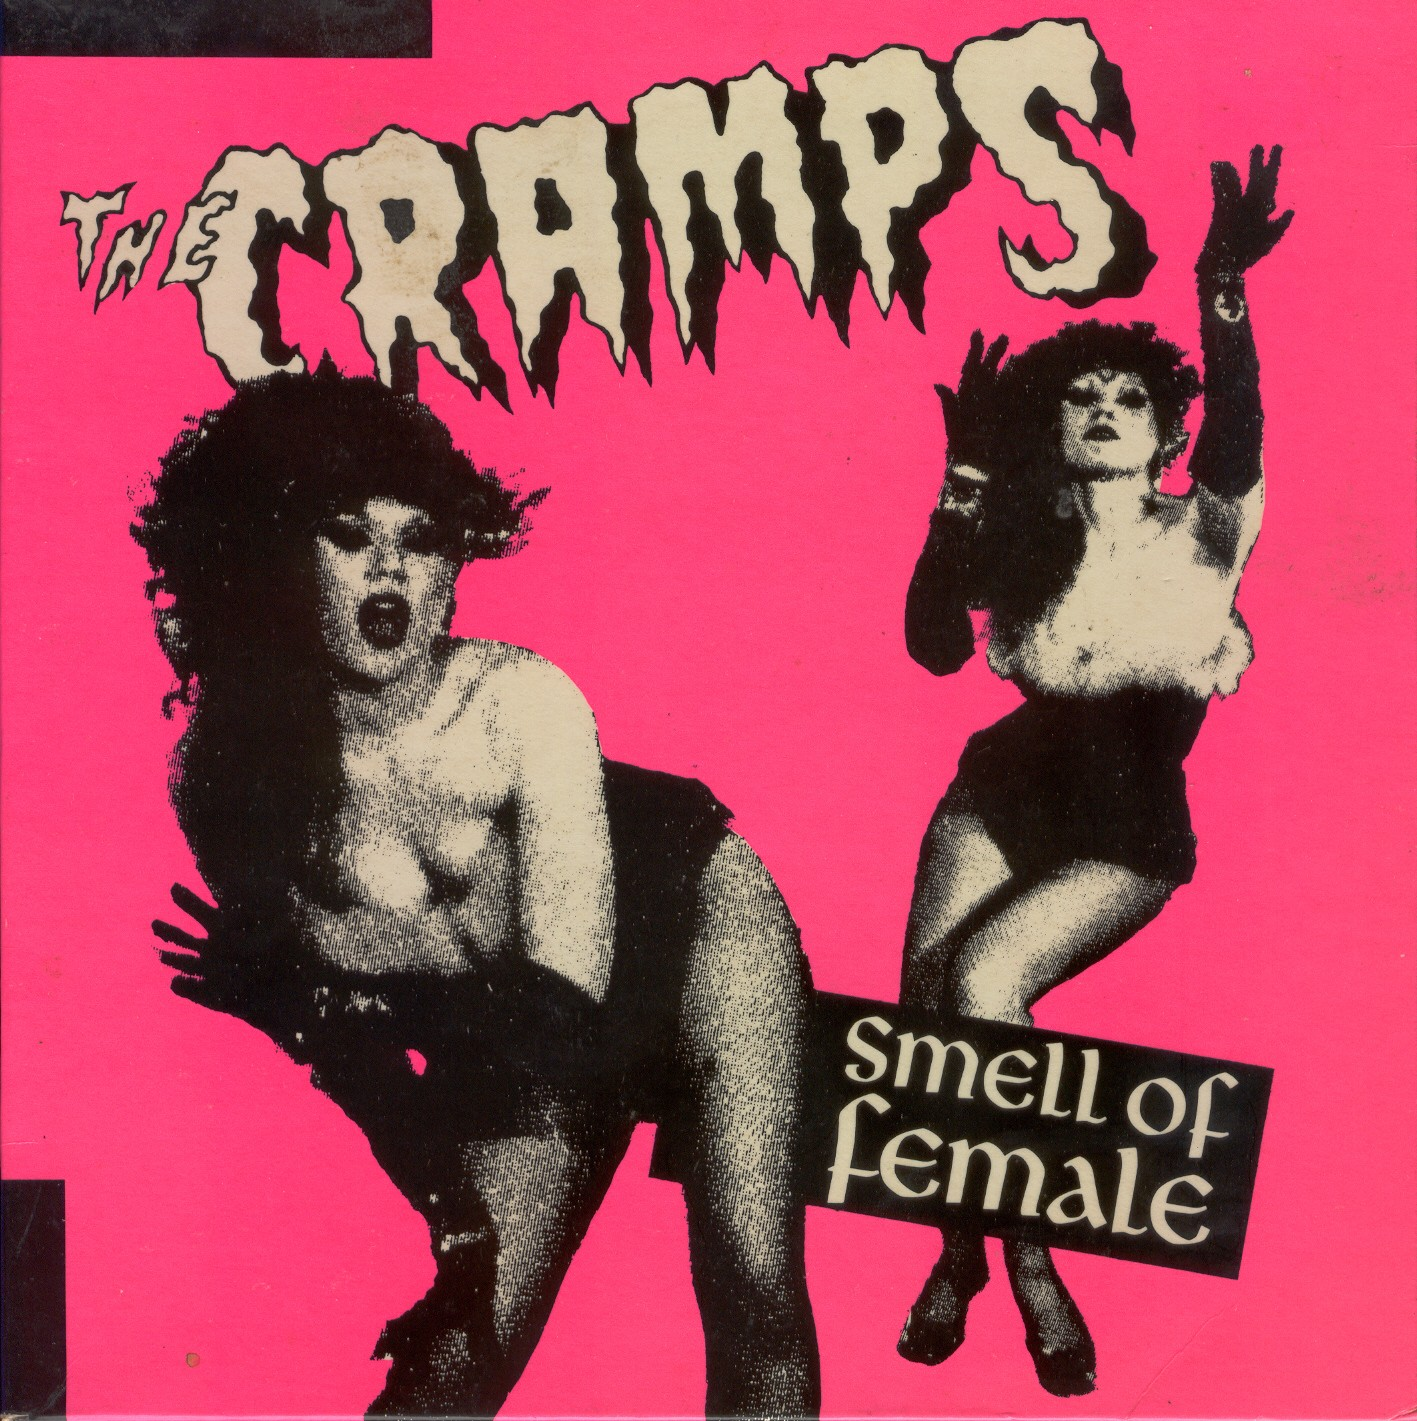 High Resolution Wallpaper | The Cramps 1417x1421 px